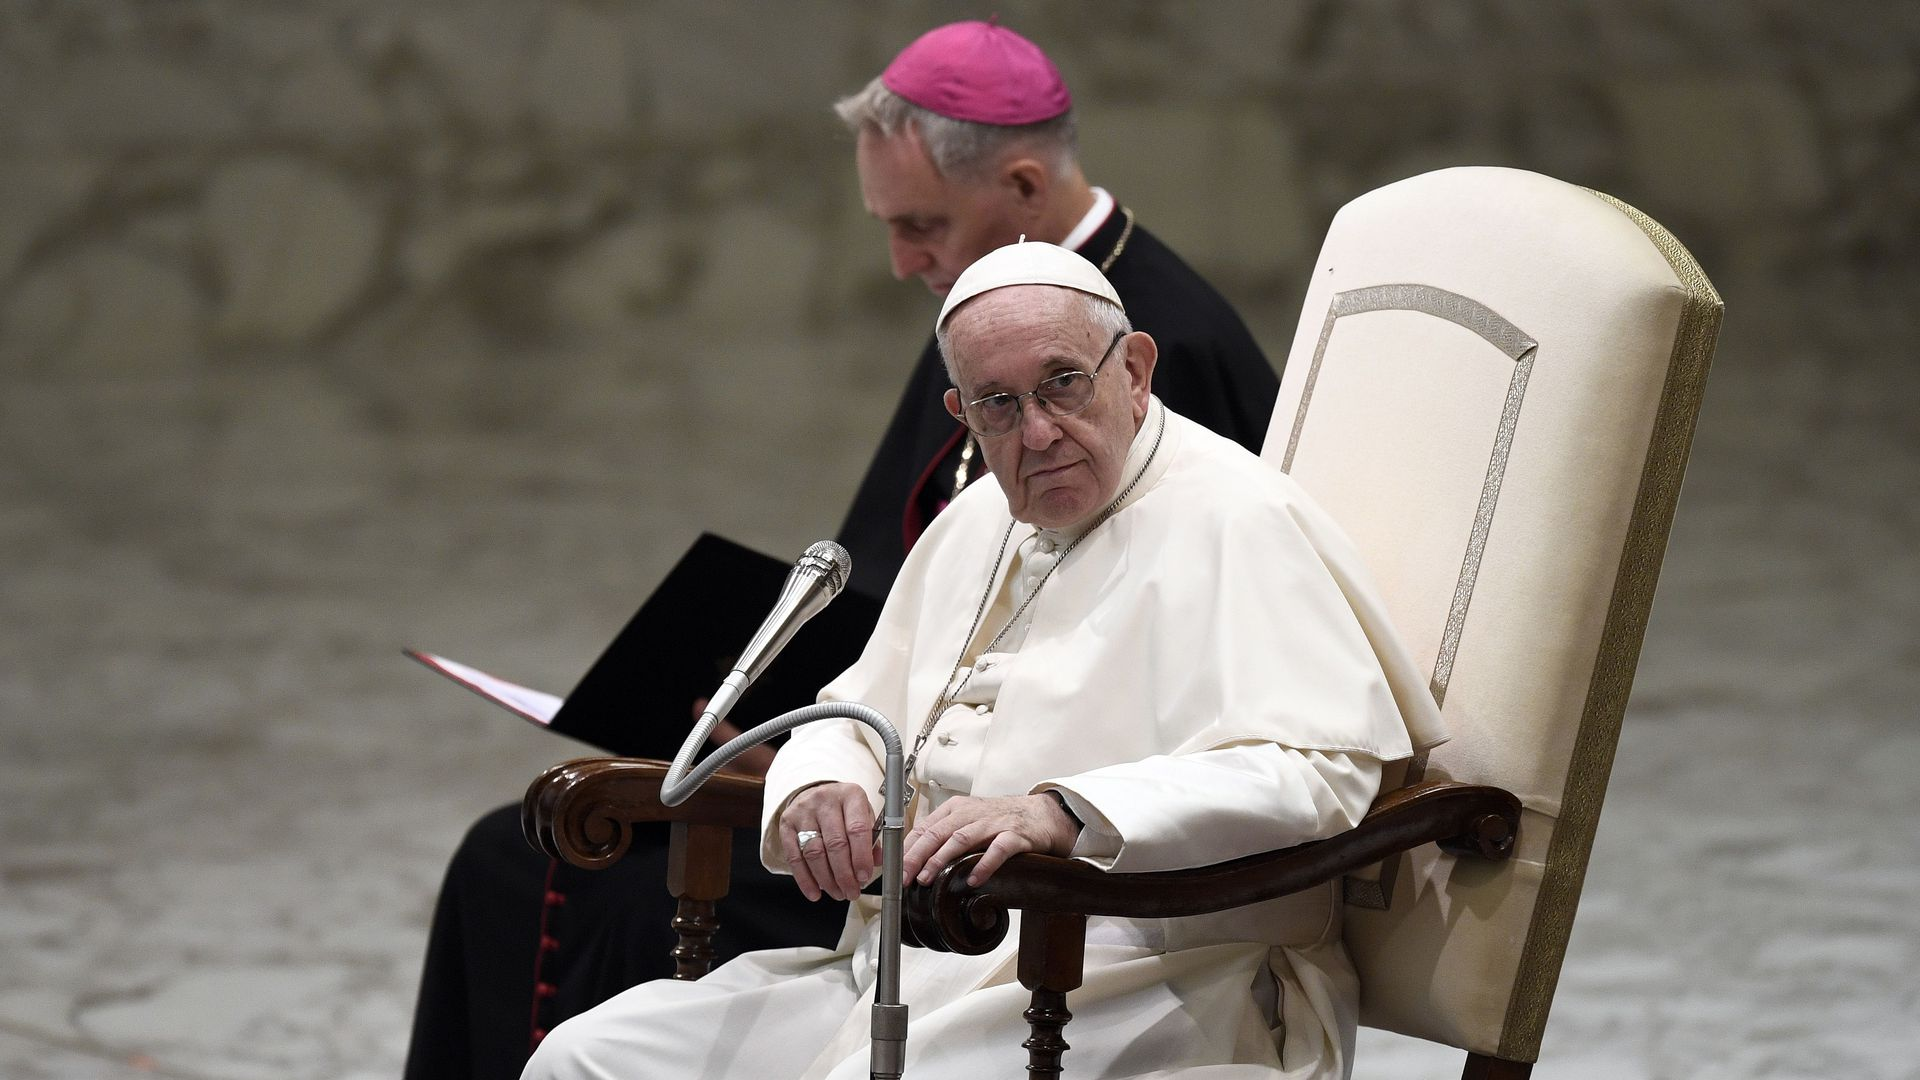 The pope sitting in a chair looking to the side, looking serious.